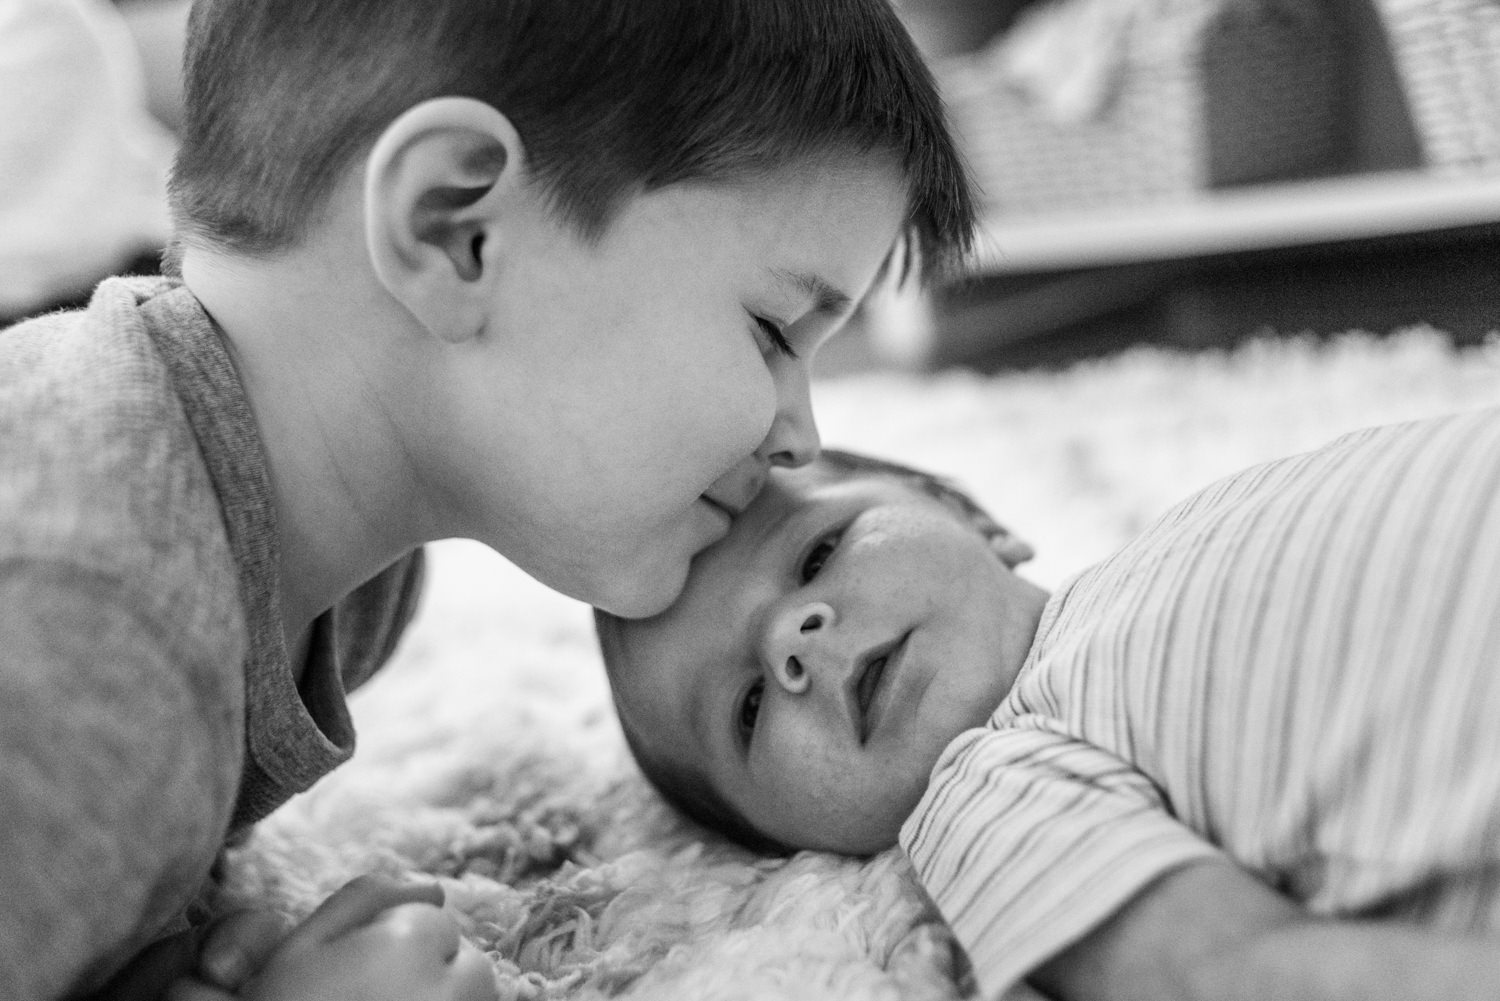 brother gives newborn a kiss